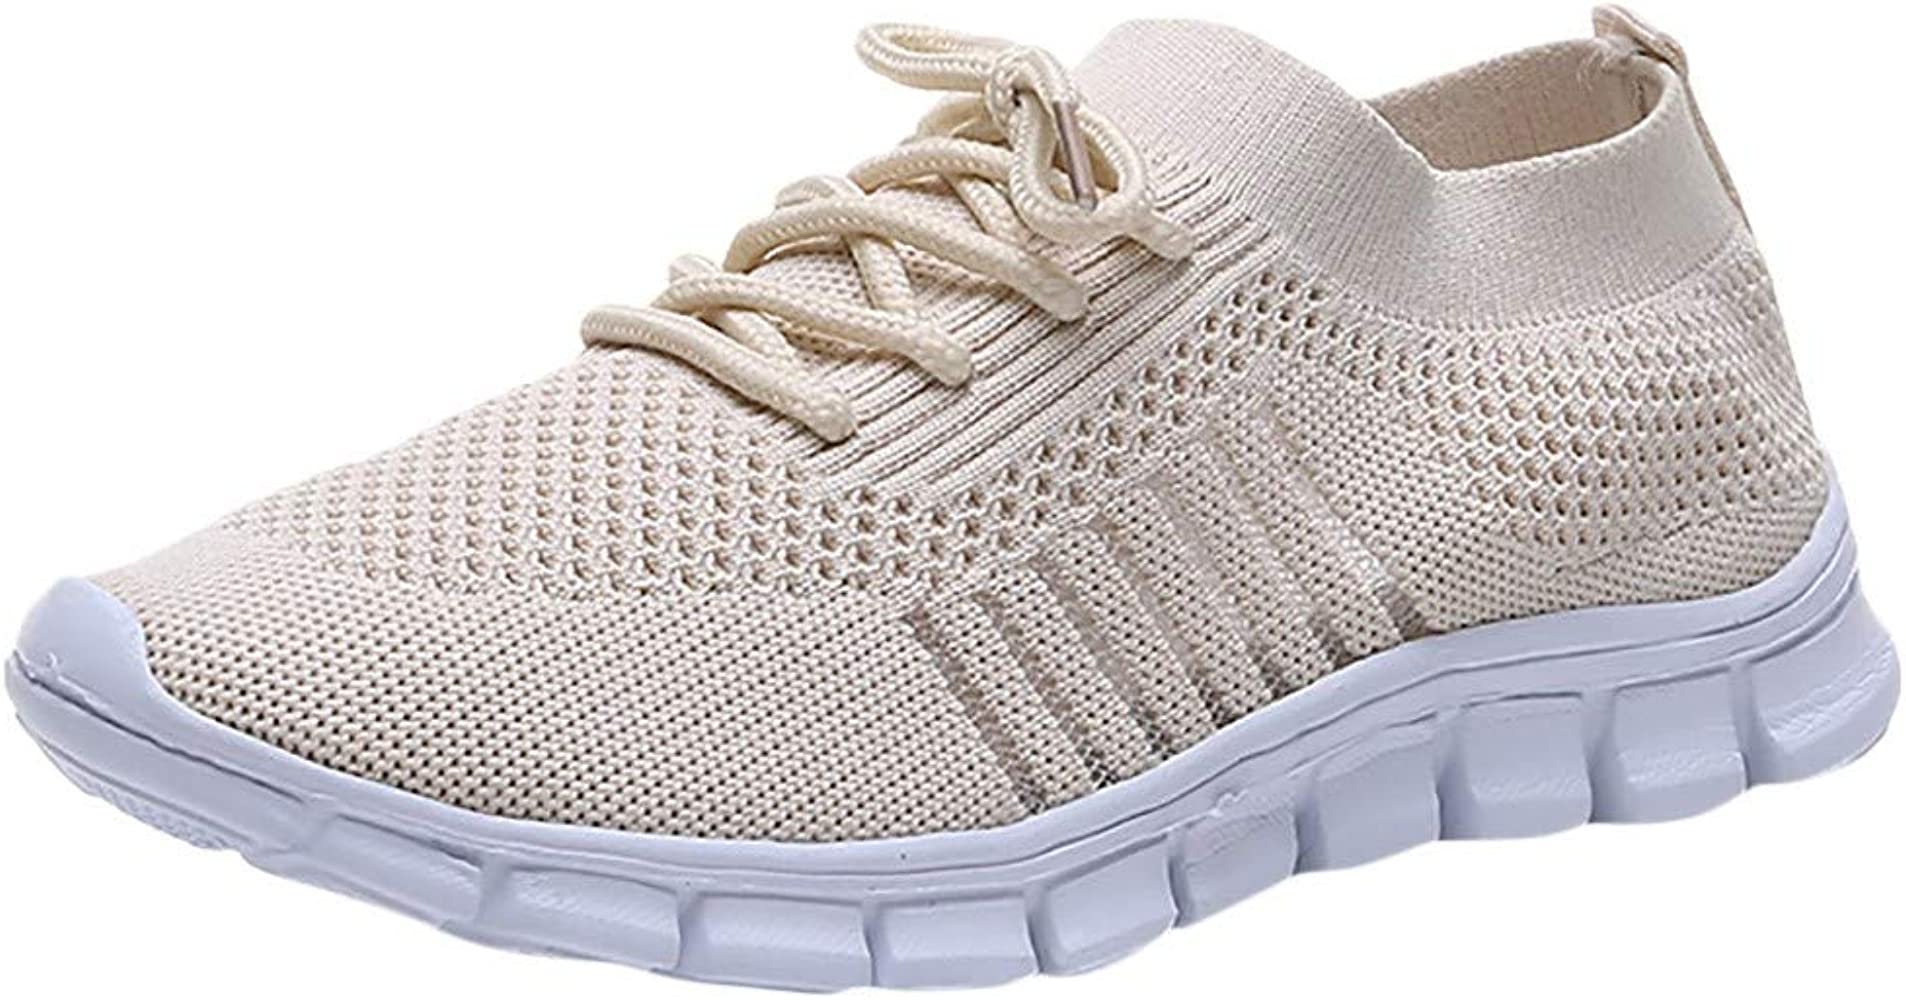 Women Walking Athletic Shoes Breathable